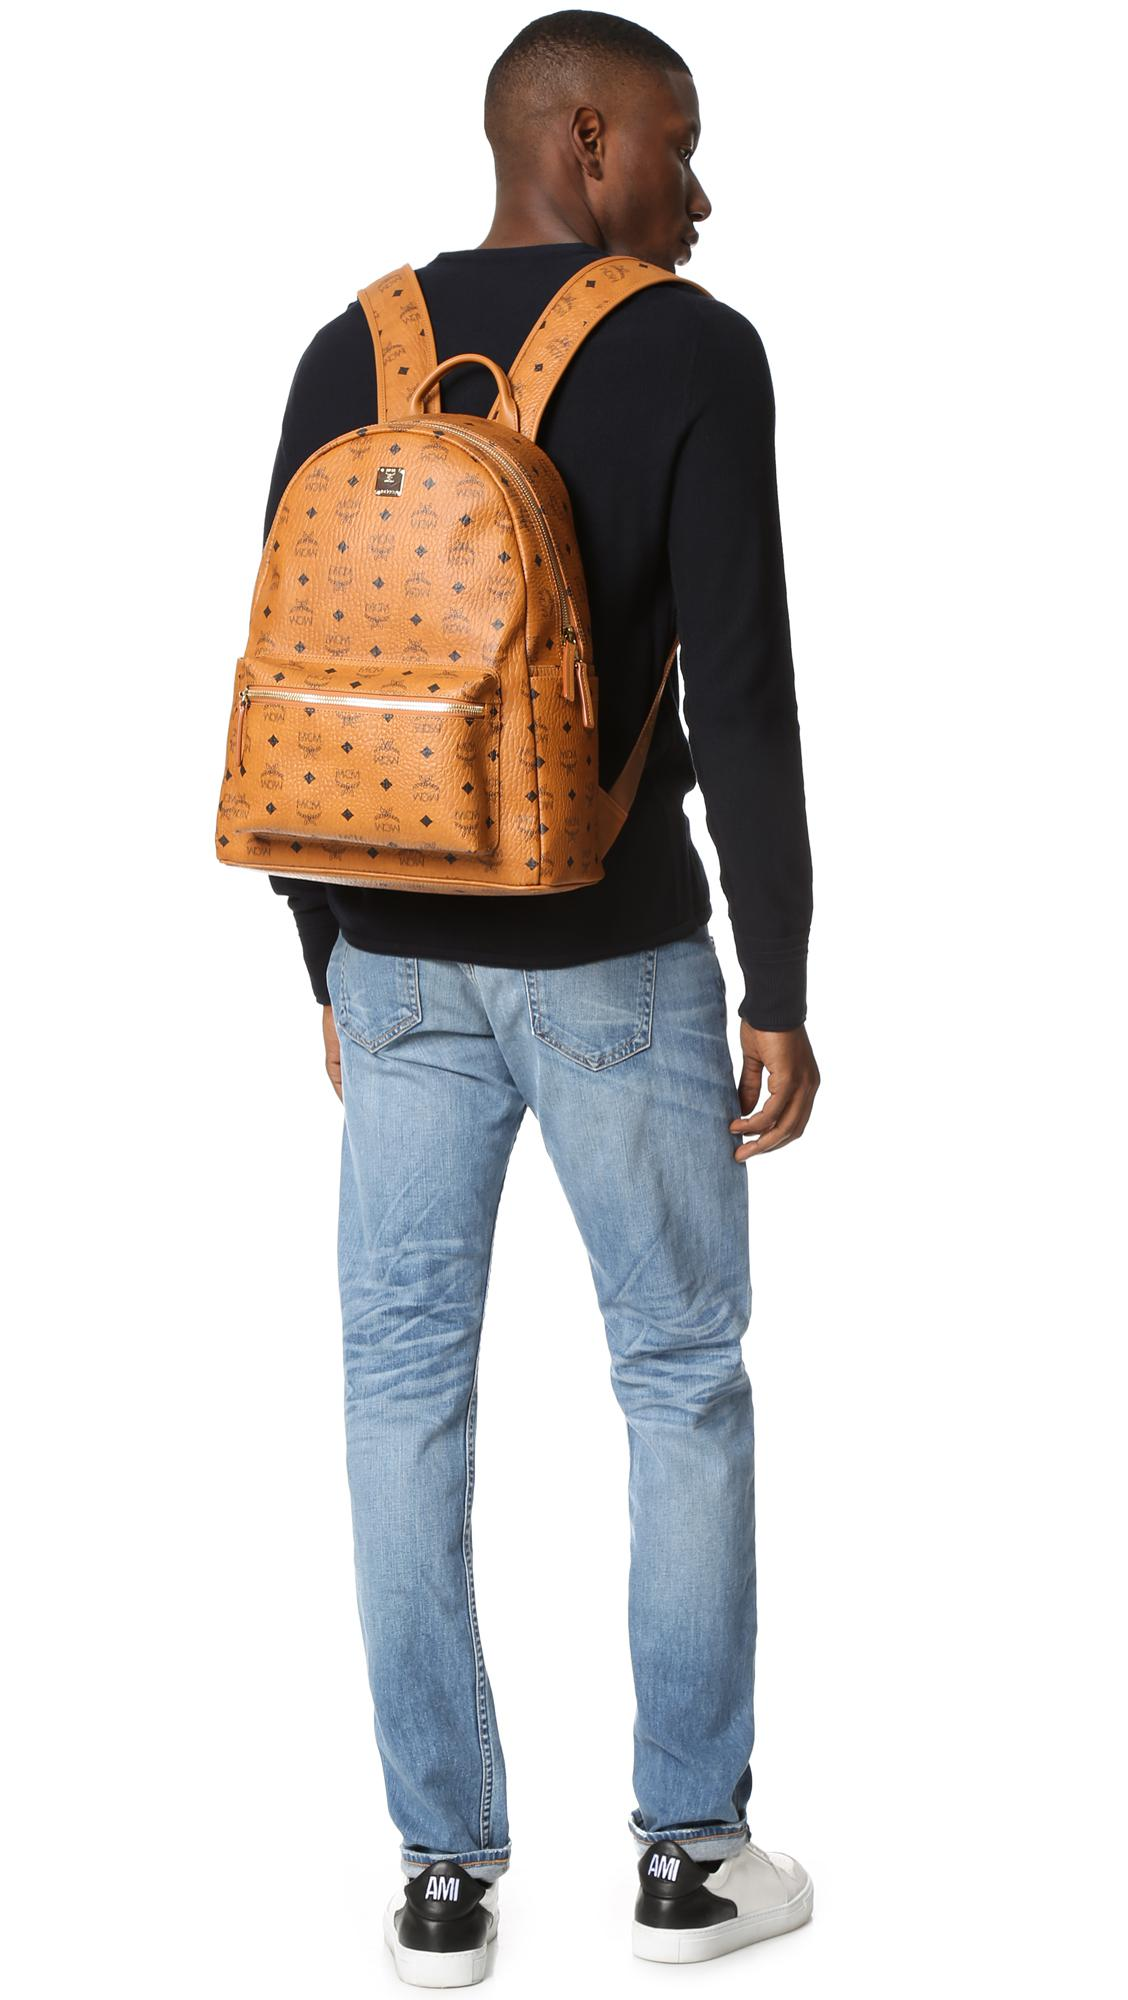 754e1bfd666 MCM - Brown Stark Medium Coated Canvas Backpack for Men - Lyst. View  fullscreen